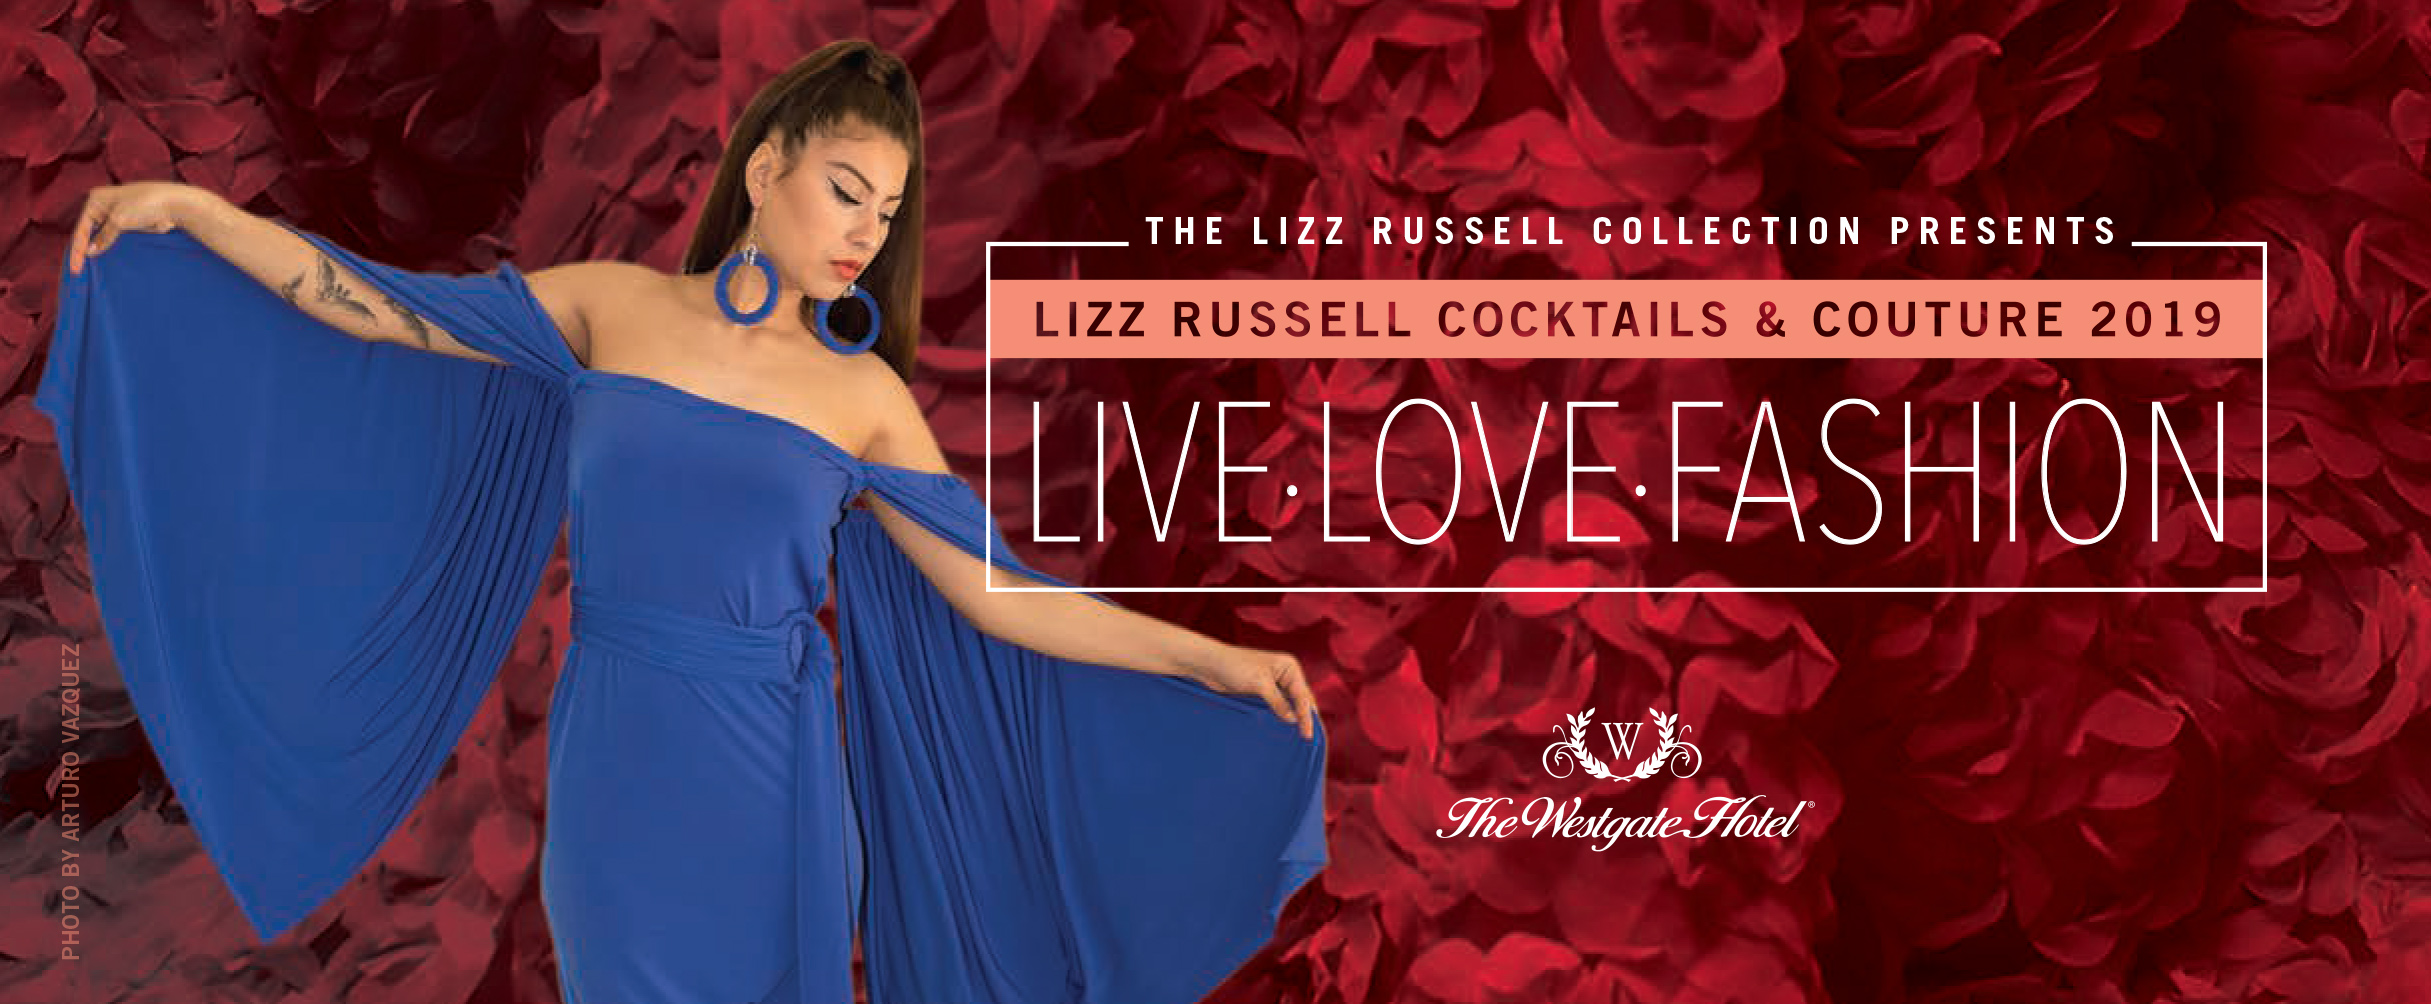 Tickets for Lizz Russell Fashion Show 2019 in San Diego from ShowClix